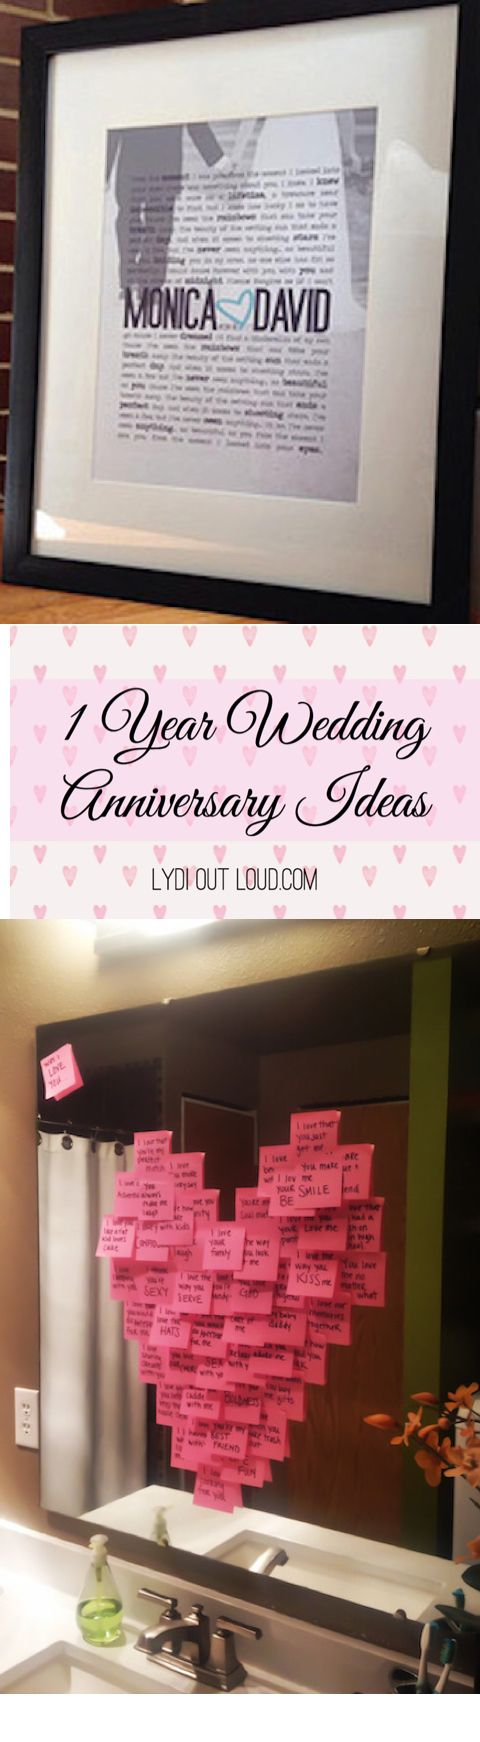 1 Year Wedding Anniversary Picture Ideas : Year Anniversary Gift Ideas First anniversary, Wedding and Lyrics